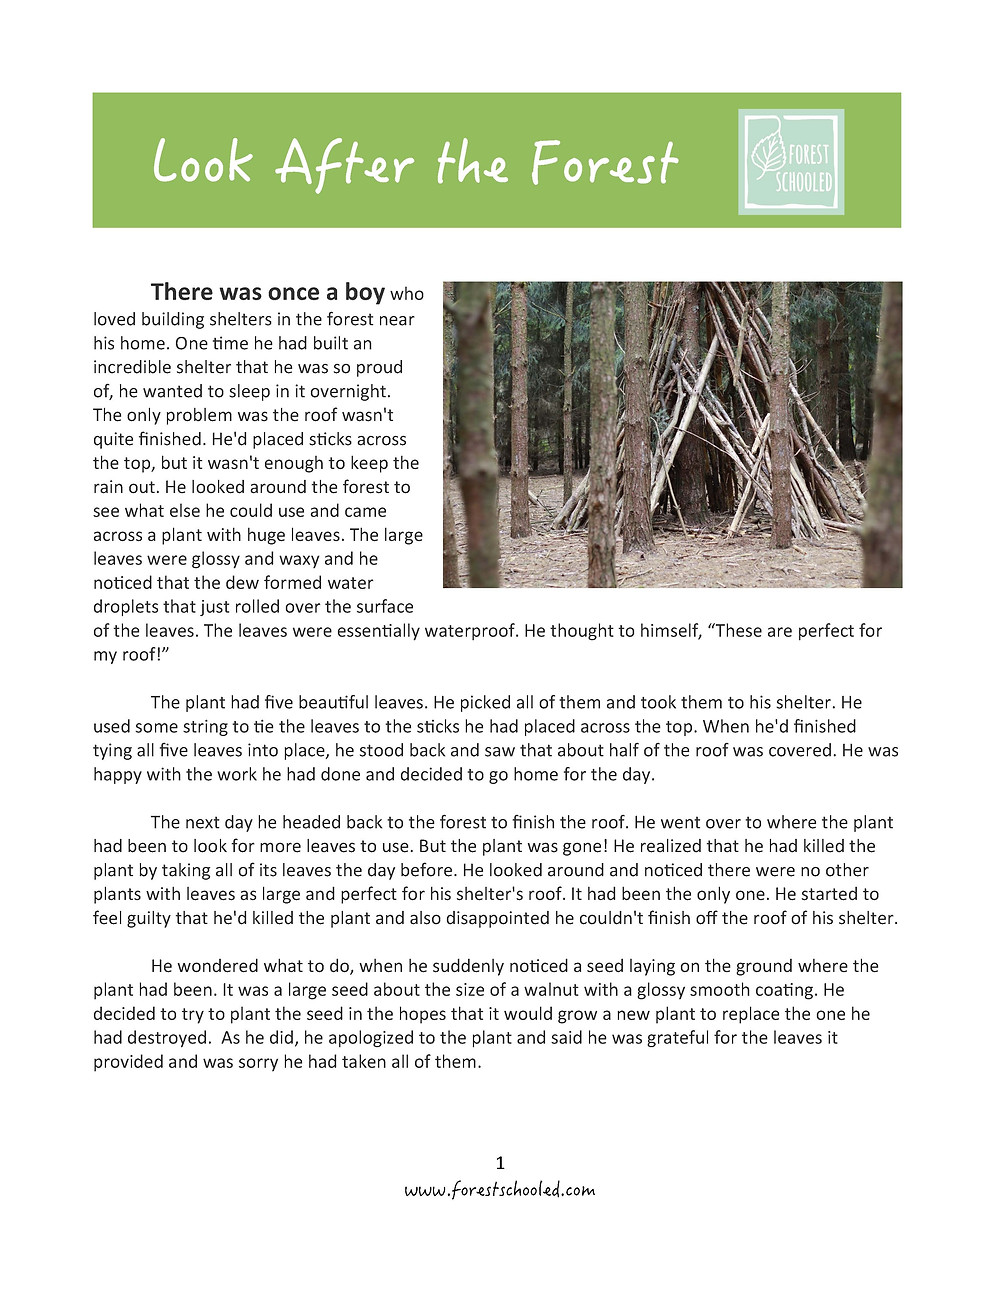 Download 'Look After the Forest' Story